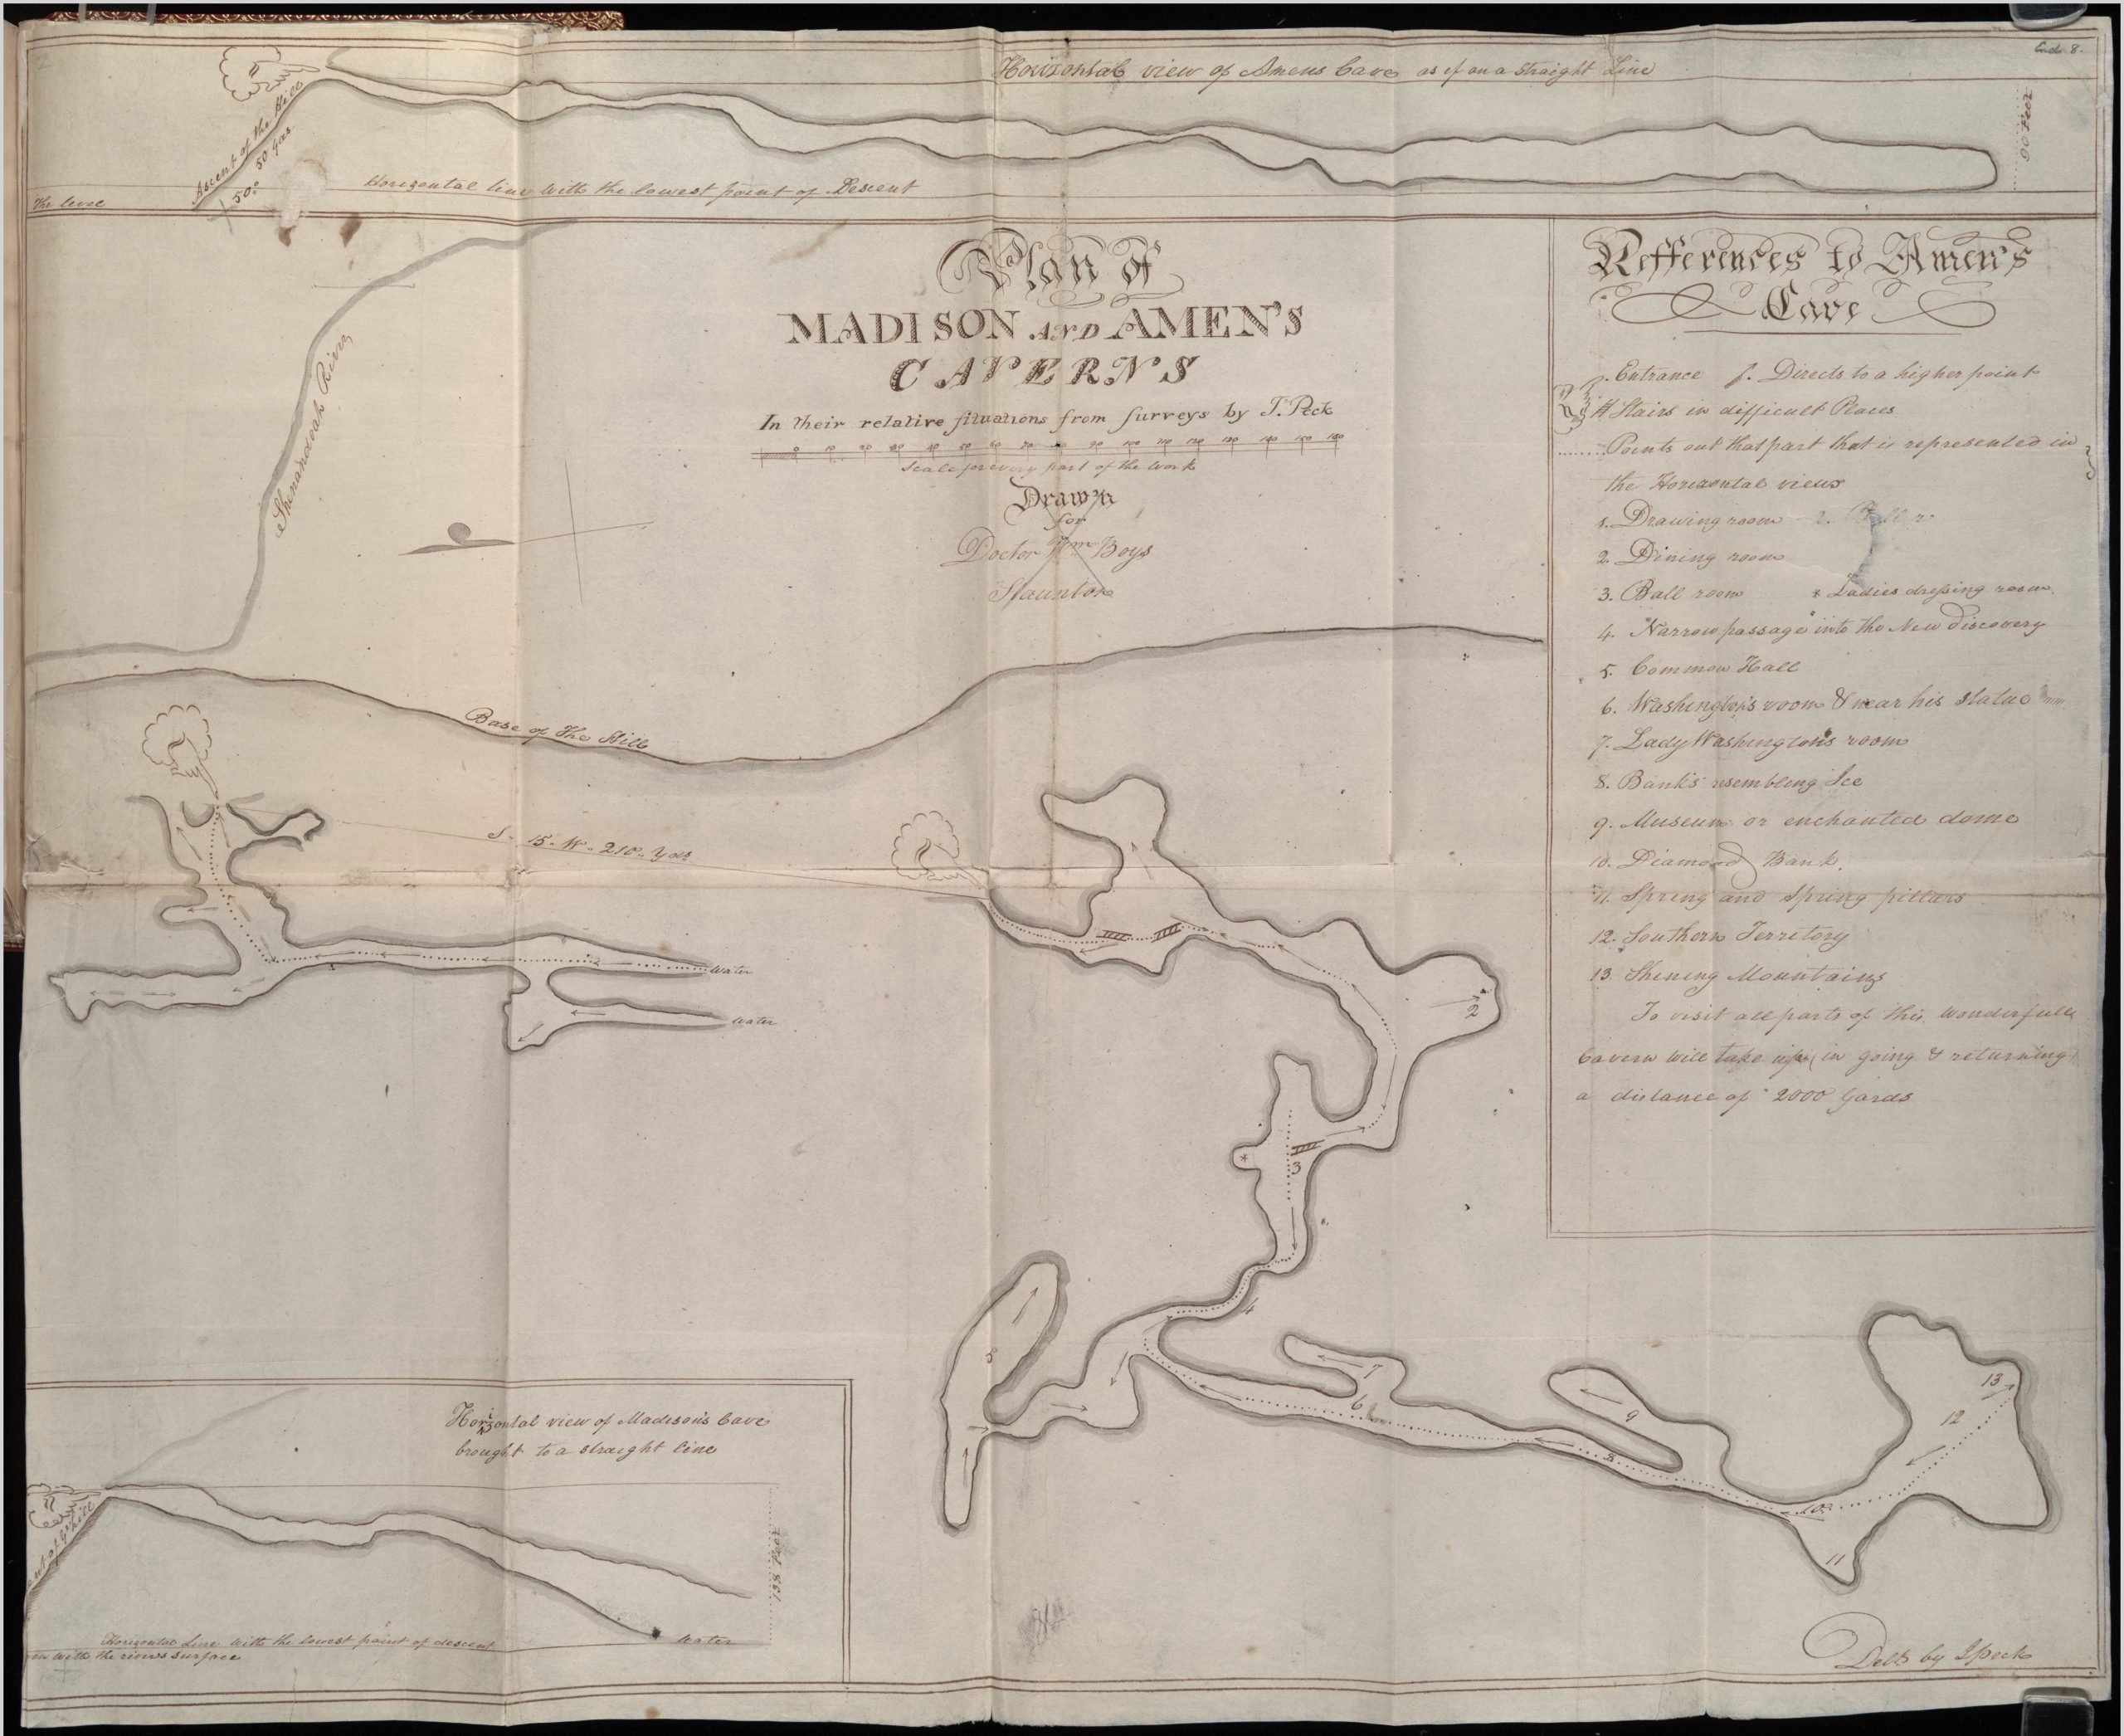 Plan of Madison and Amen's Caverns